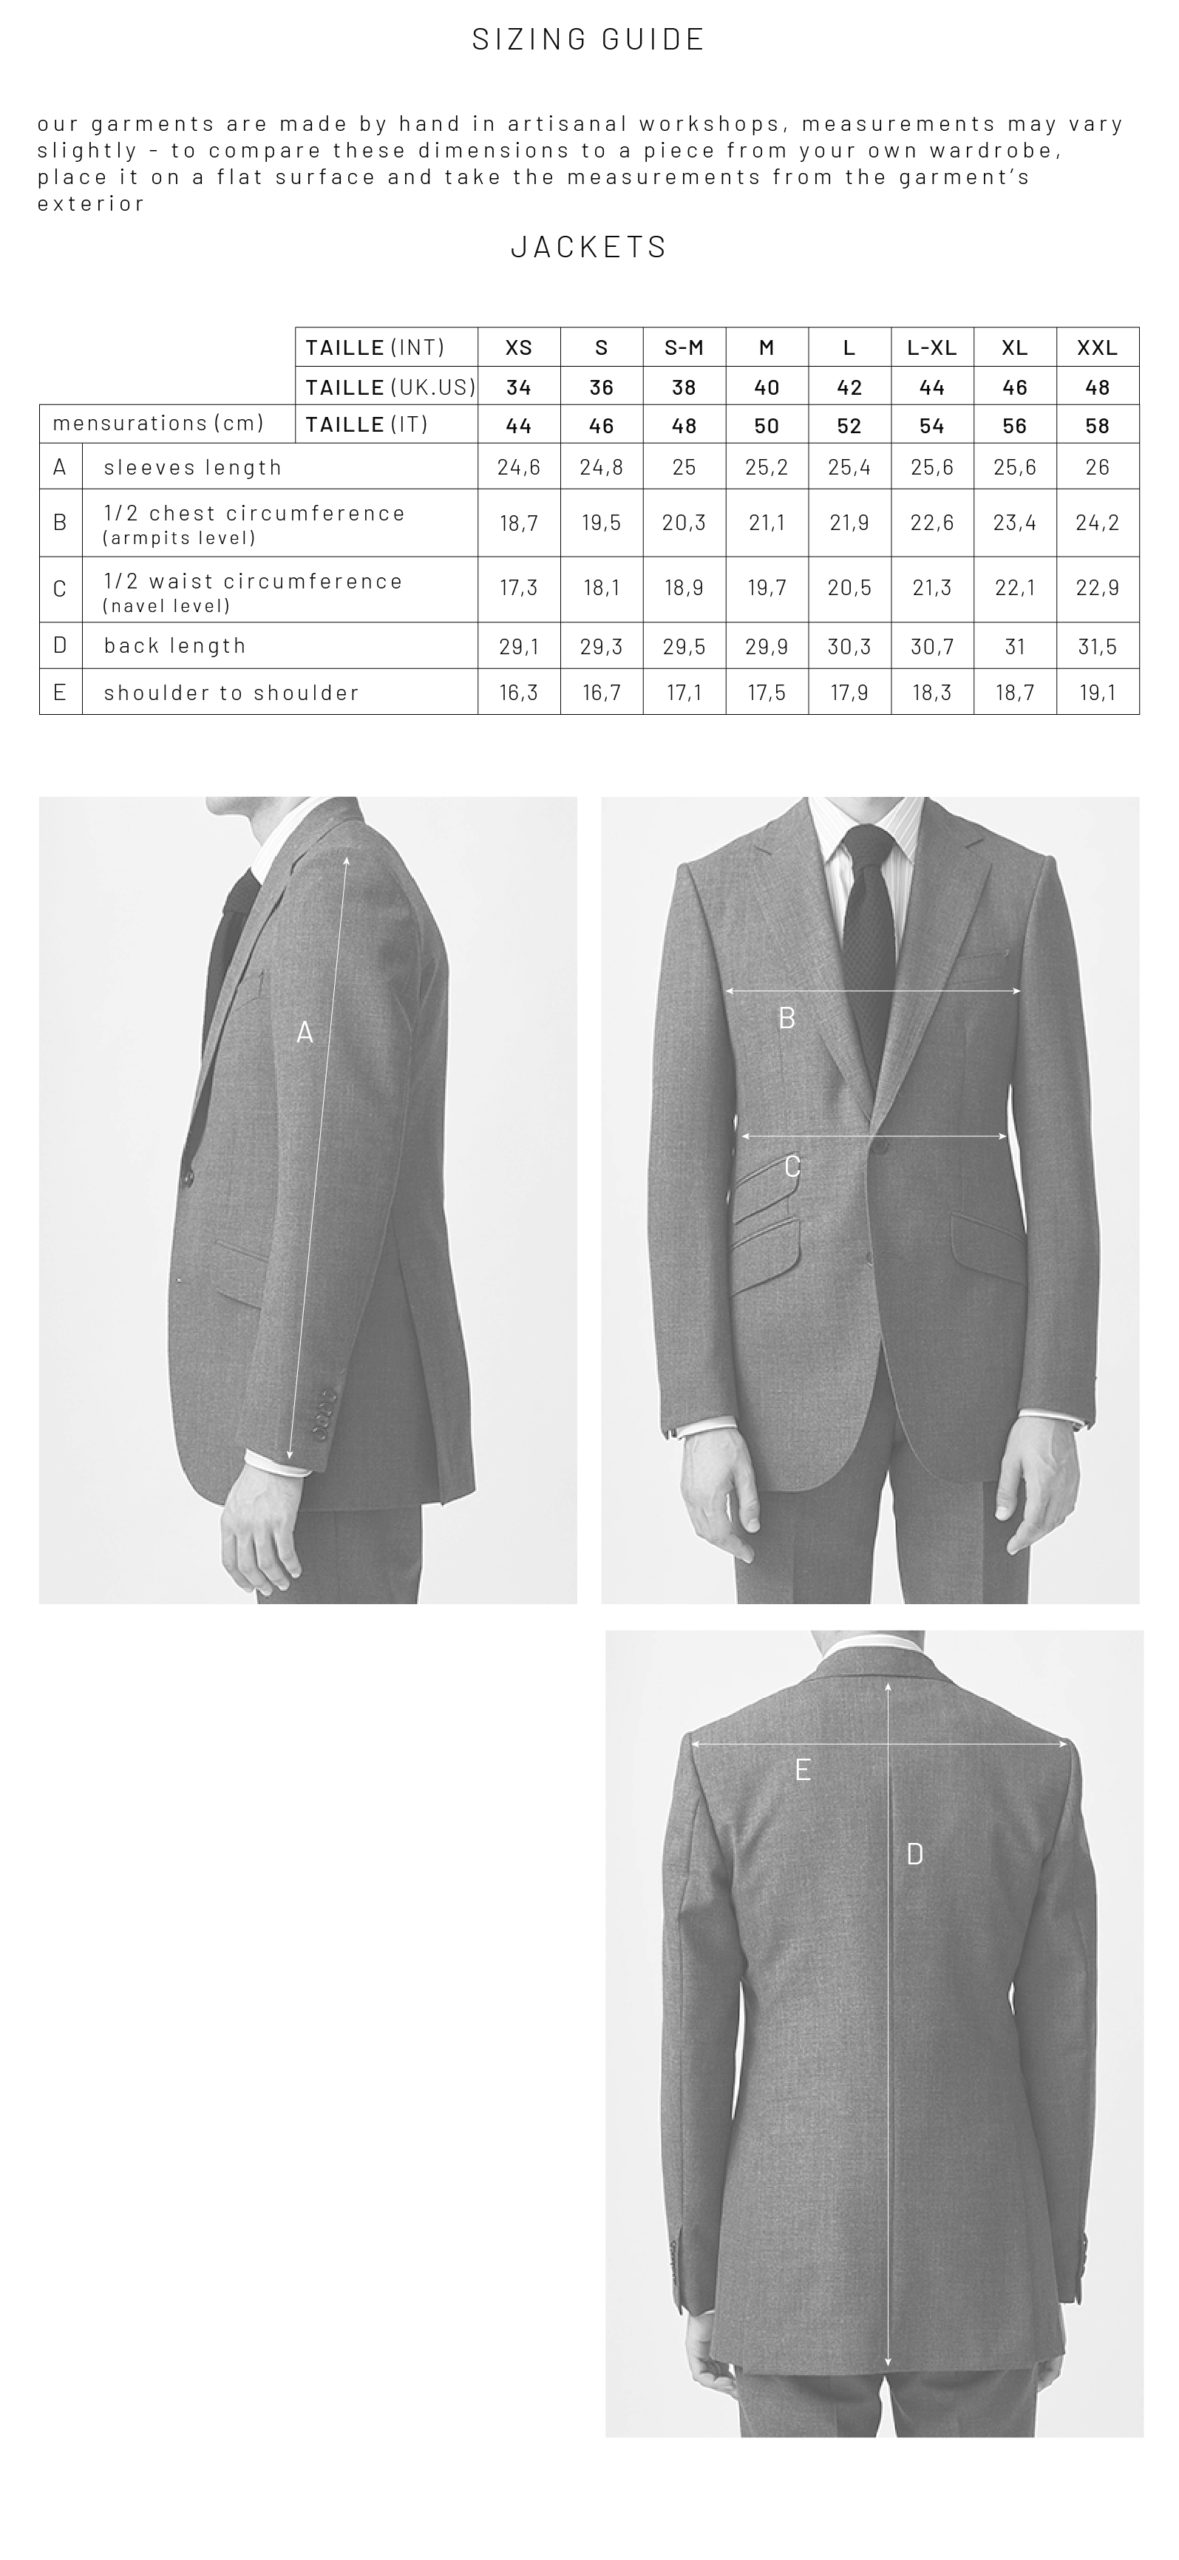 SIZING GUIDE ENGLISH VERSION - SUITS AND JACKETS